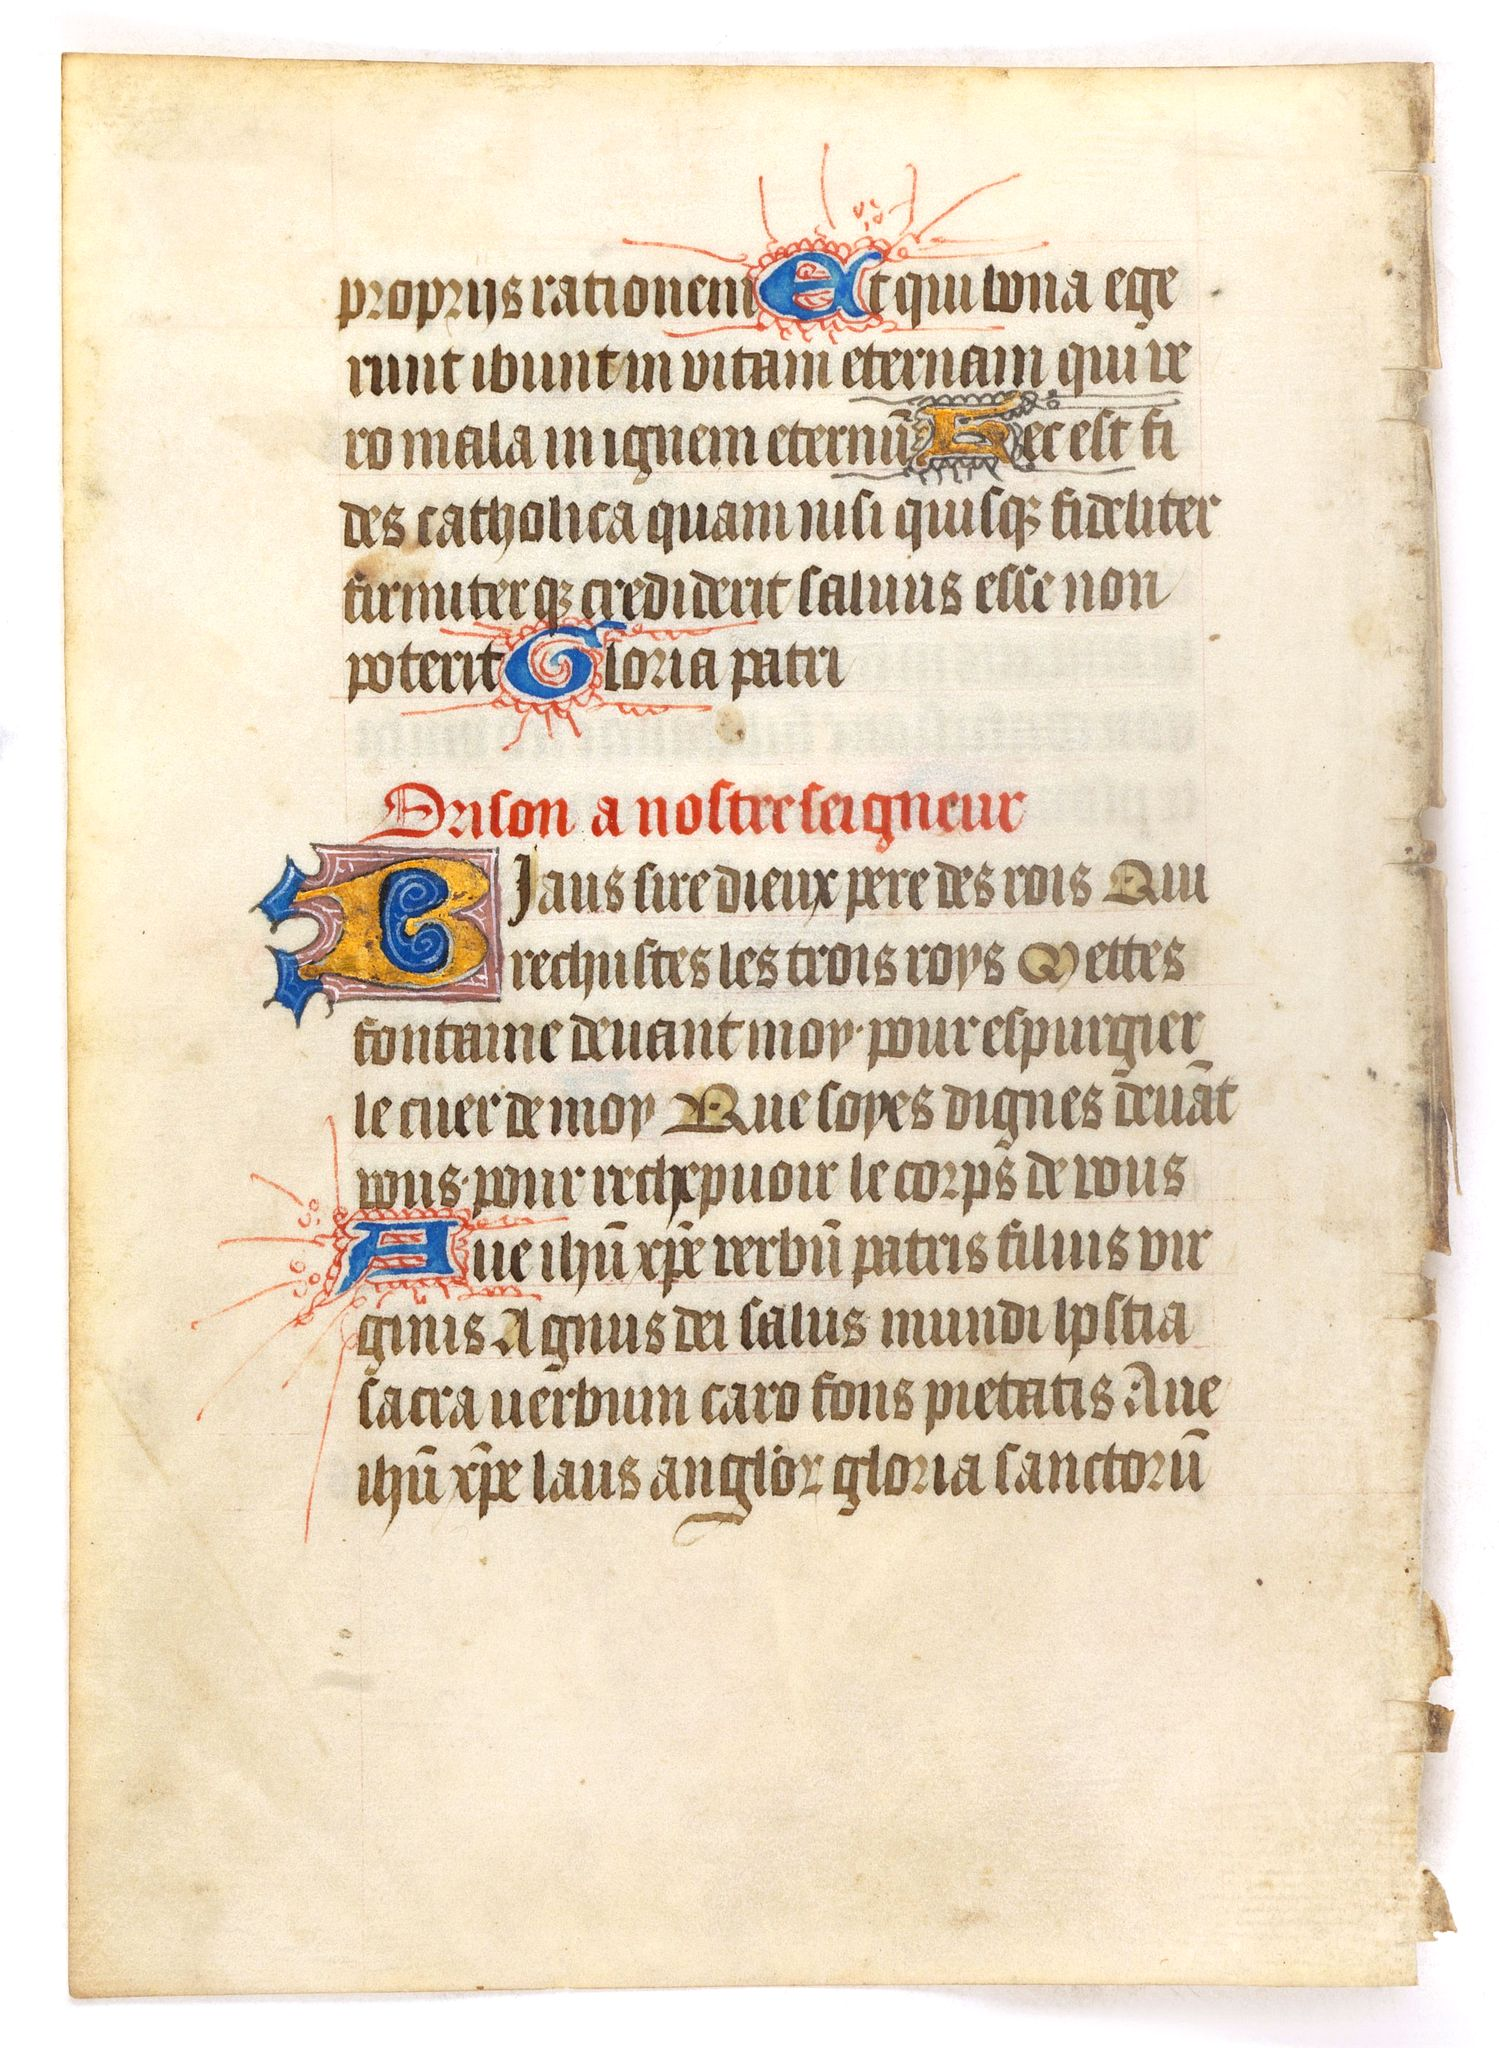 BOOK OF HOURS -  Leaf on vellum from a manuscript Book of Hours.